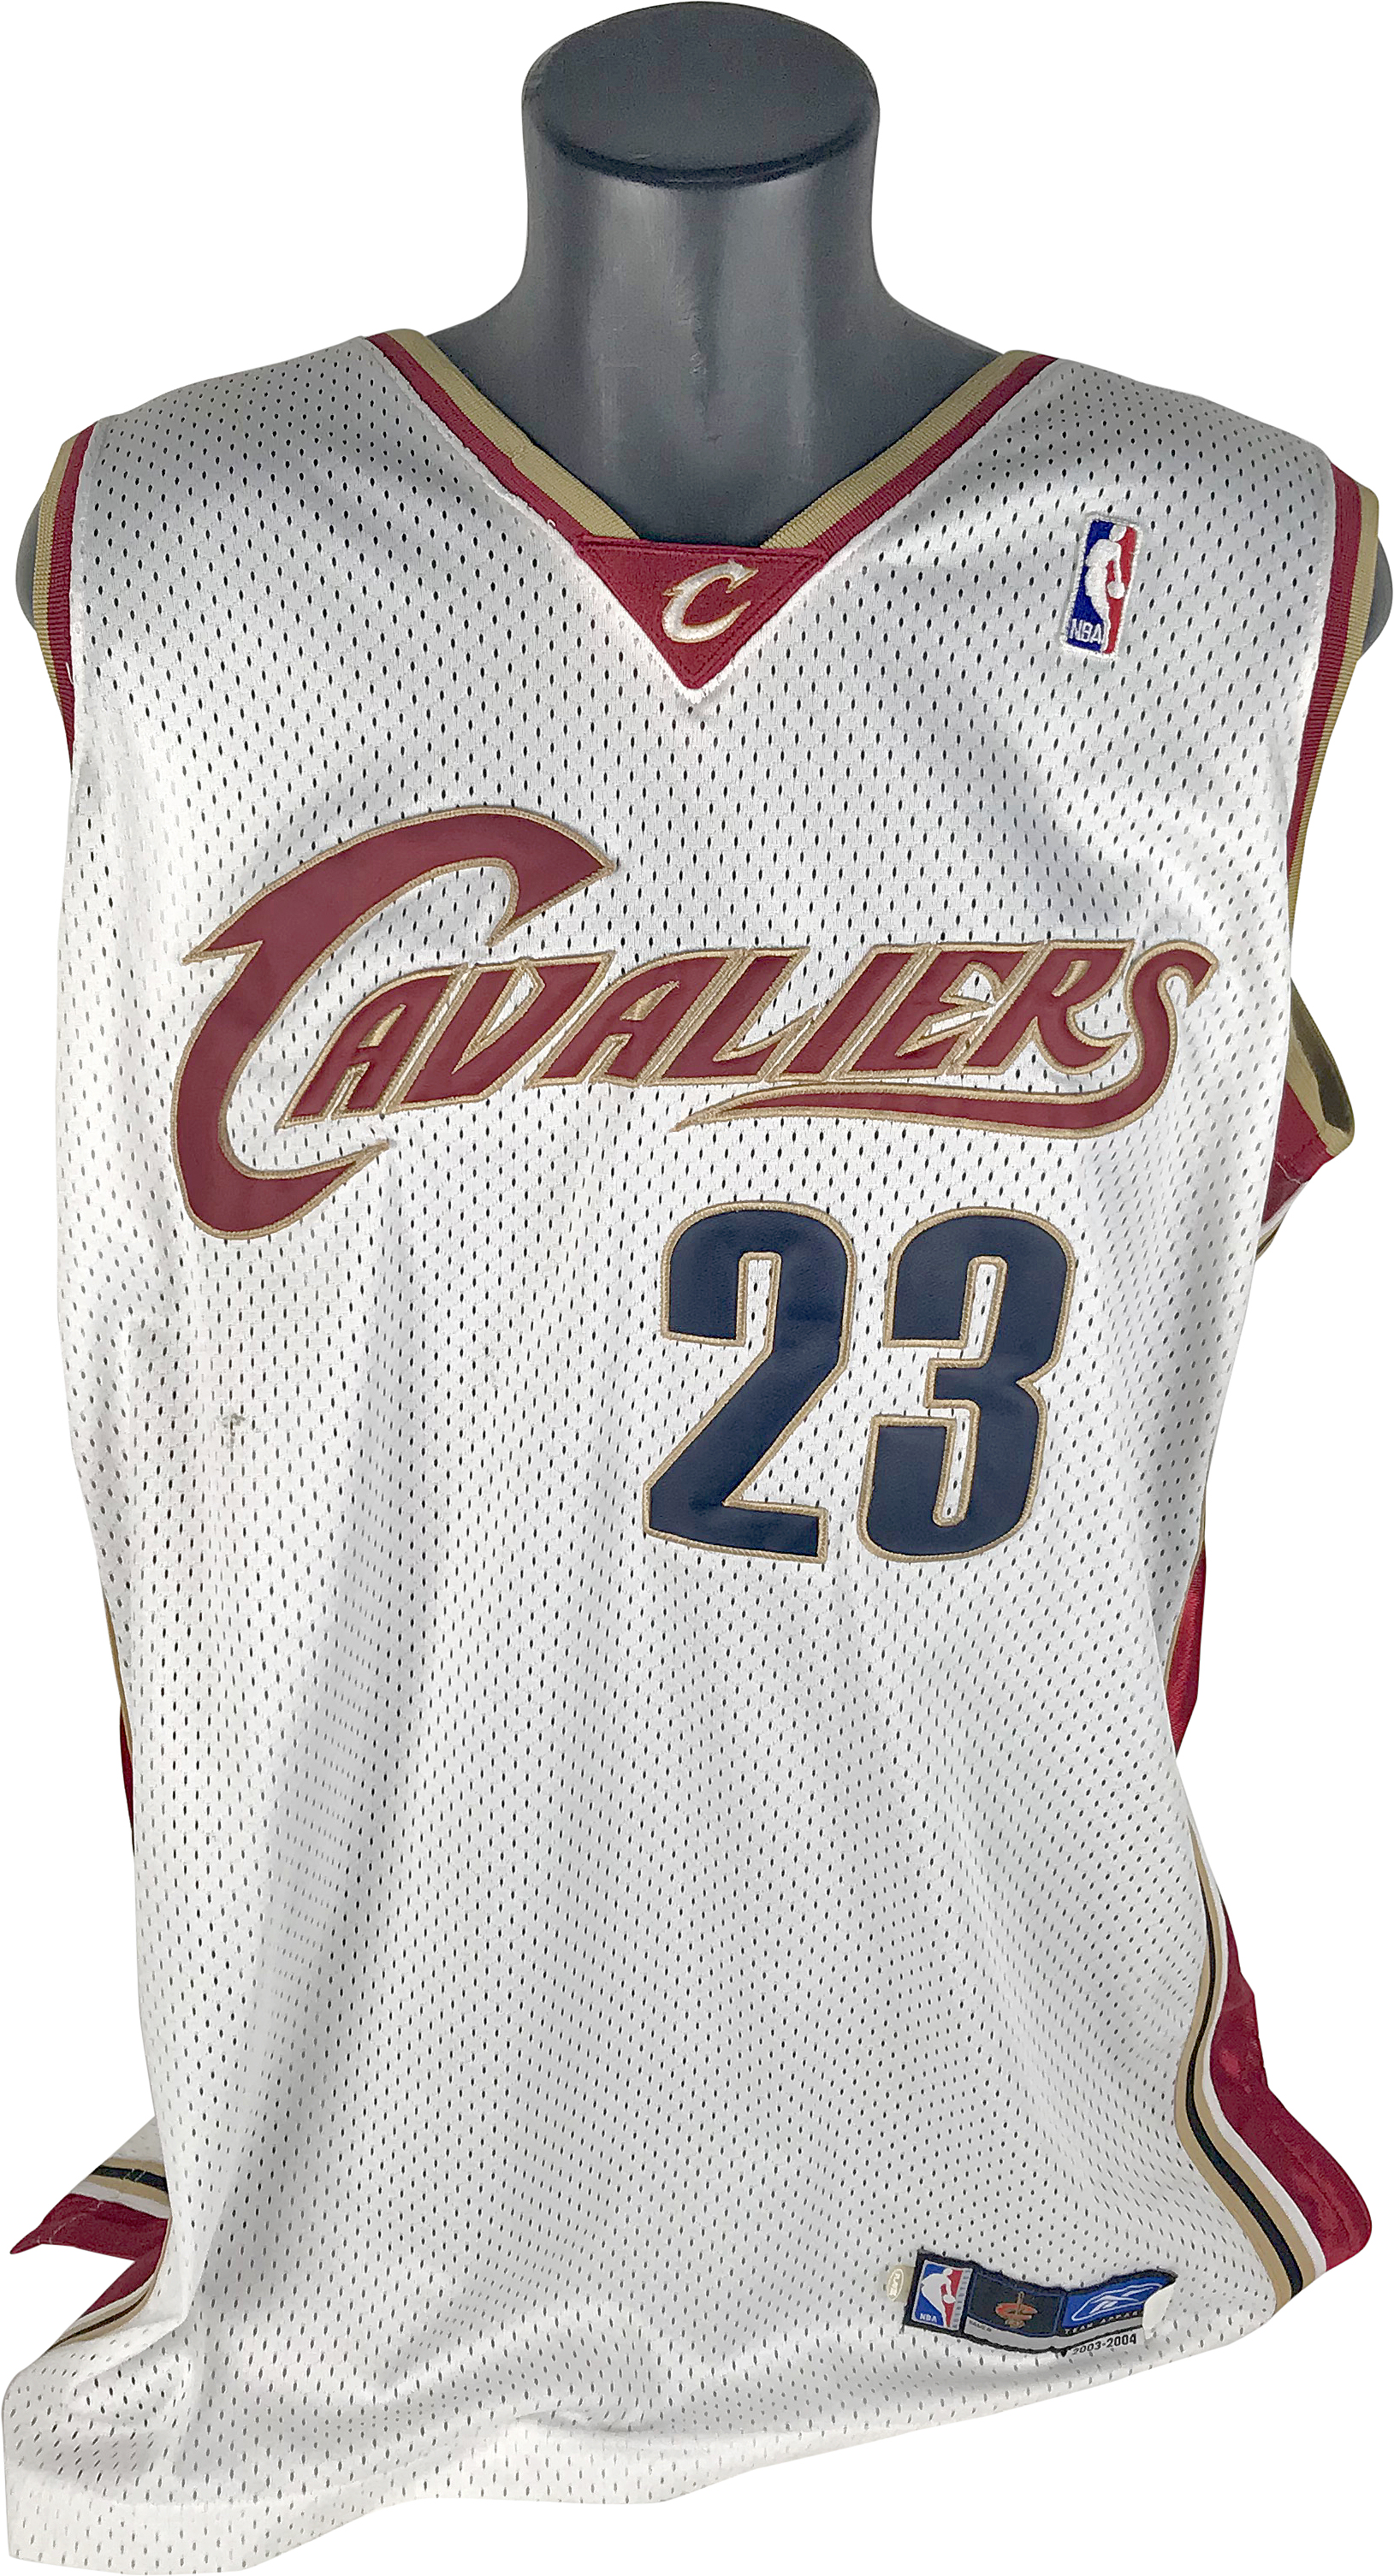 save off 003aa 6e7a8 Lot Detail - LeBron James Game Worn/Used 2003-04 Cleveland ...